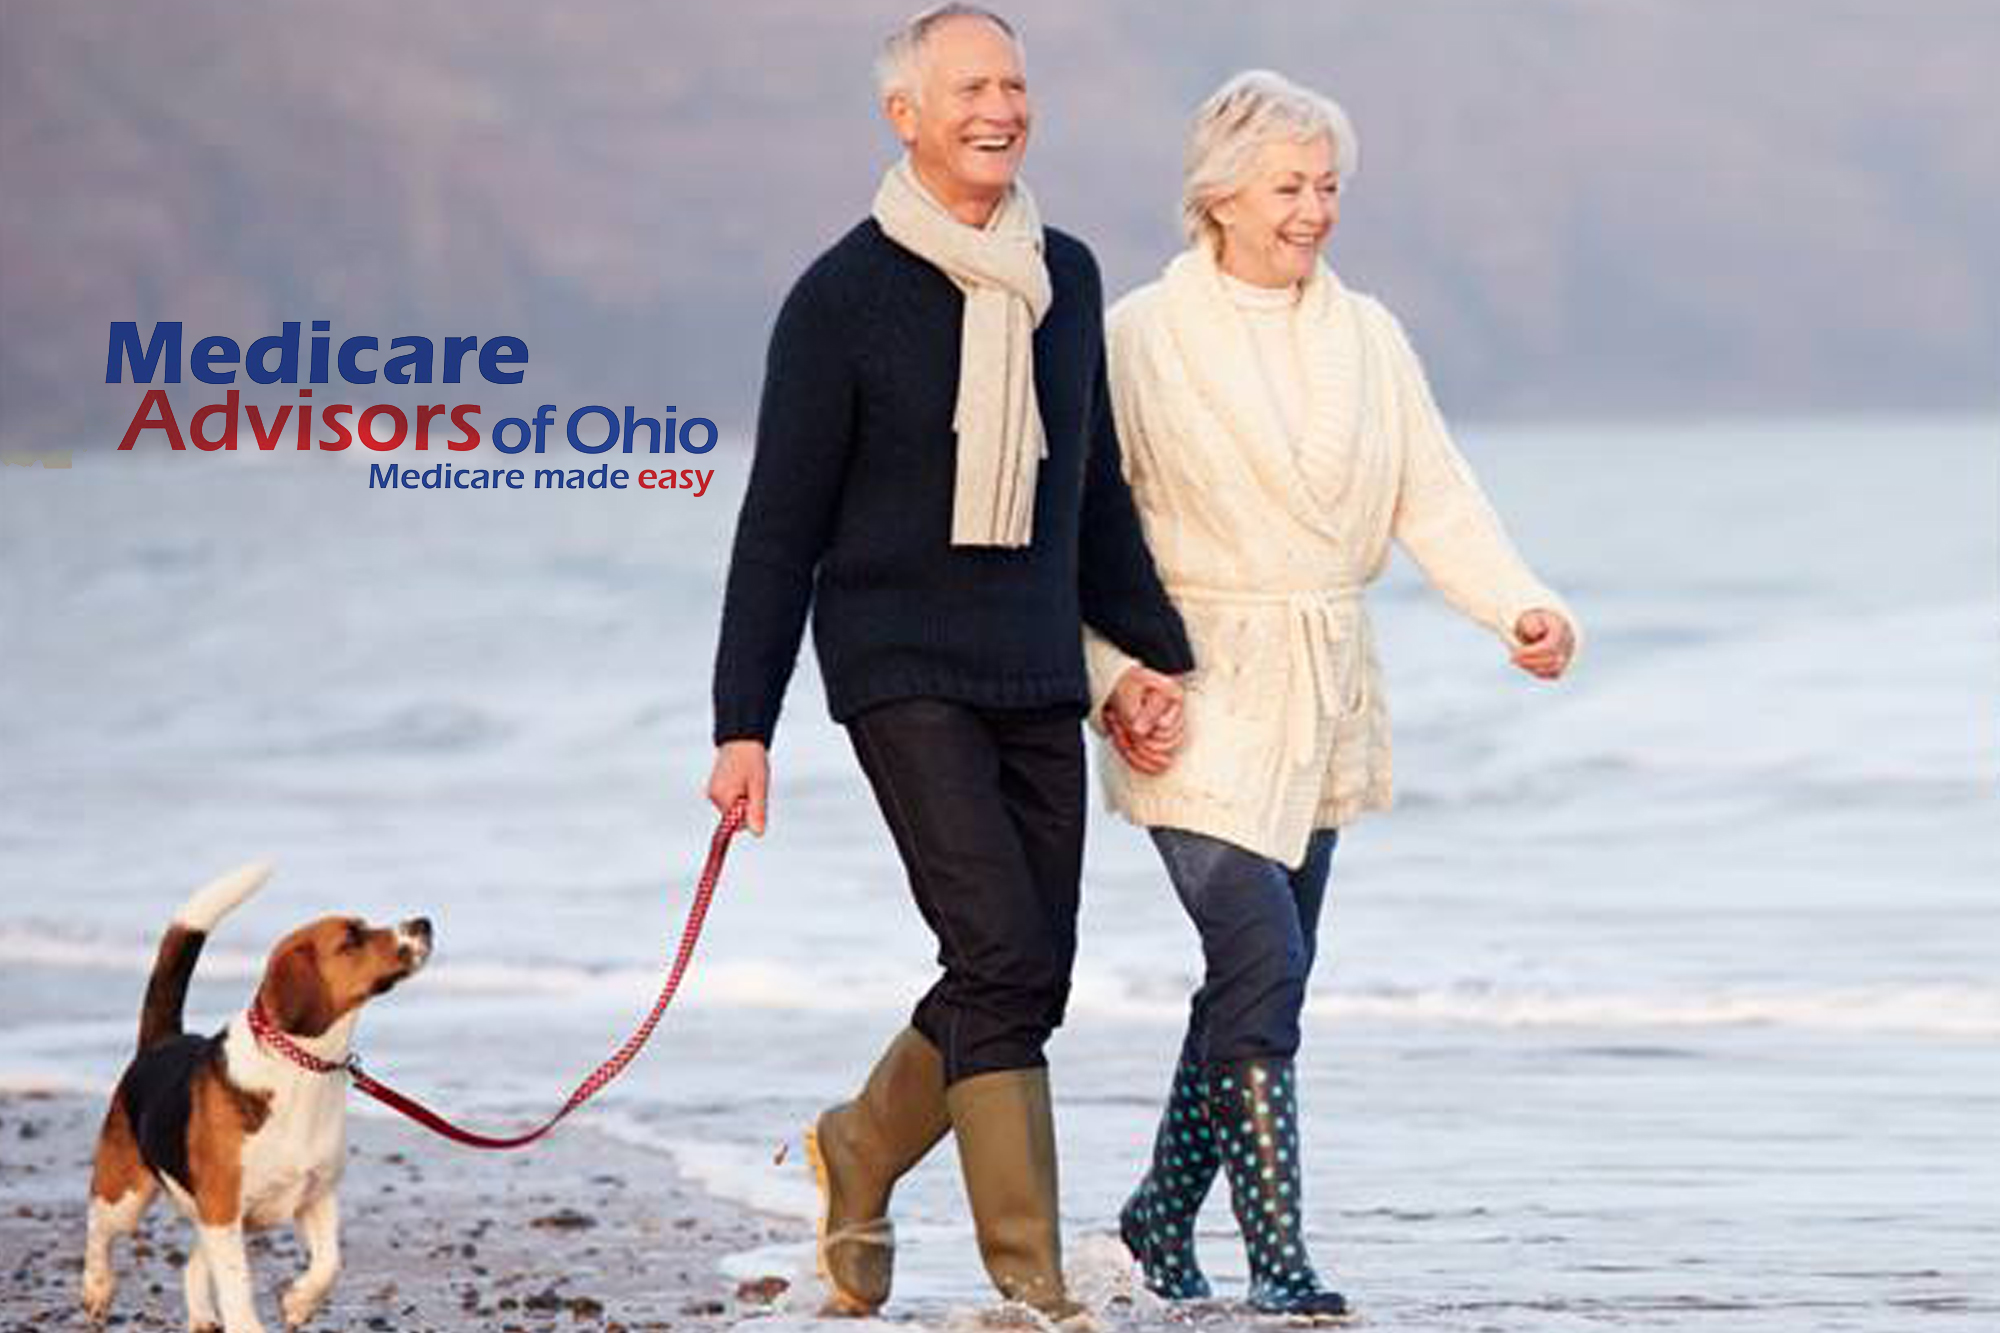 We are licensed insurance professionals specializing in helping you understand Medicare. But we are more than just an insurance agency- we are your neighbors working, contributing and serving in your community.